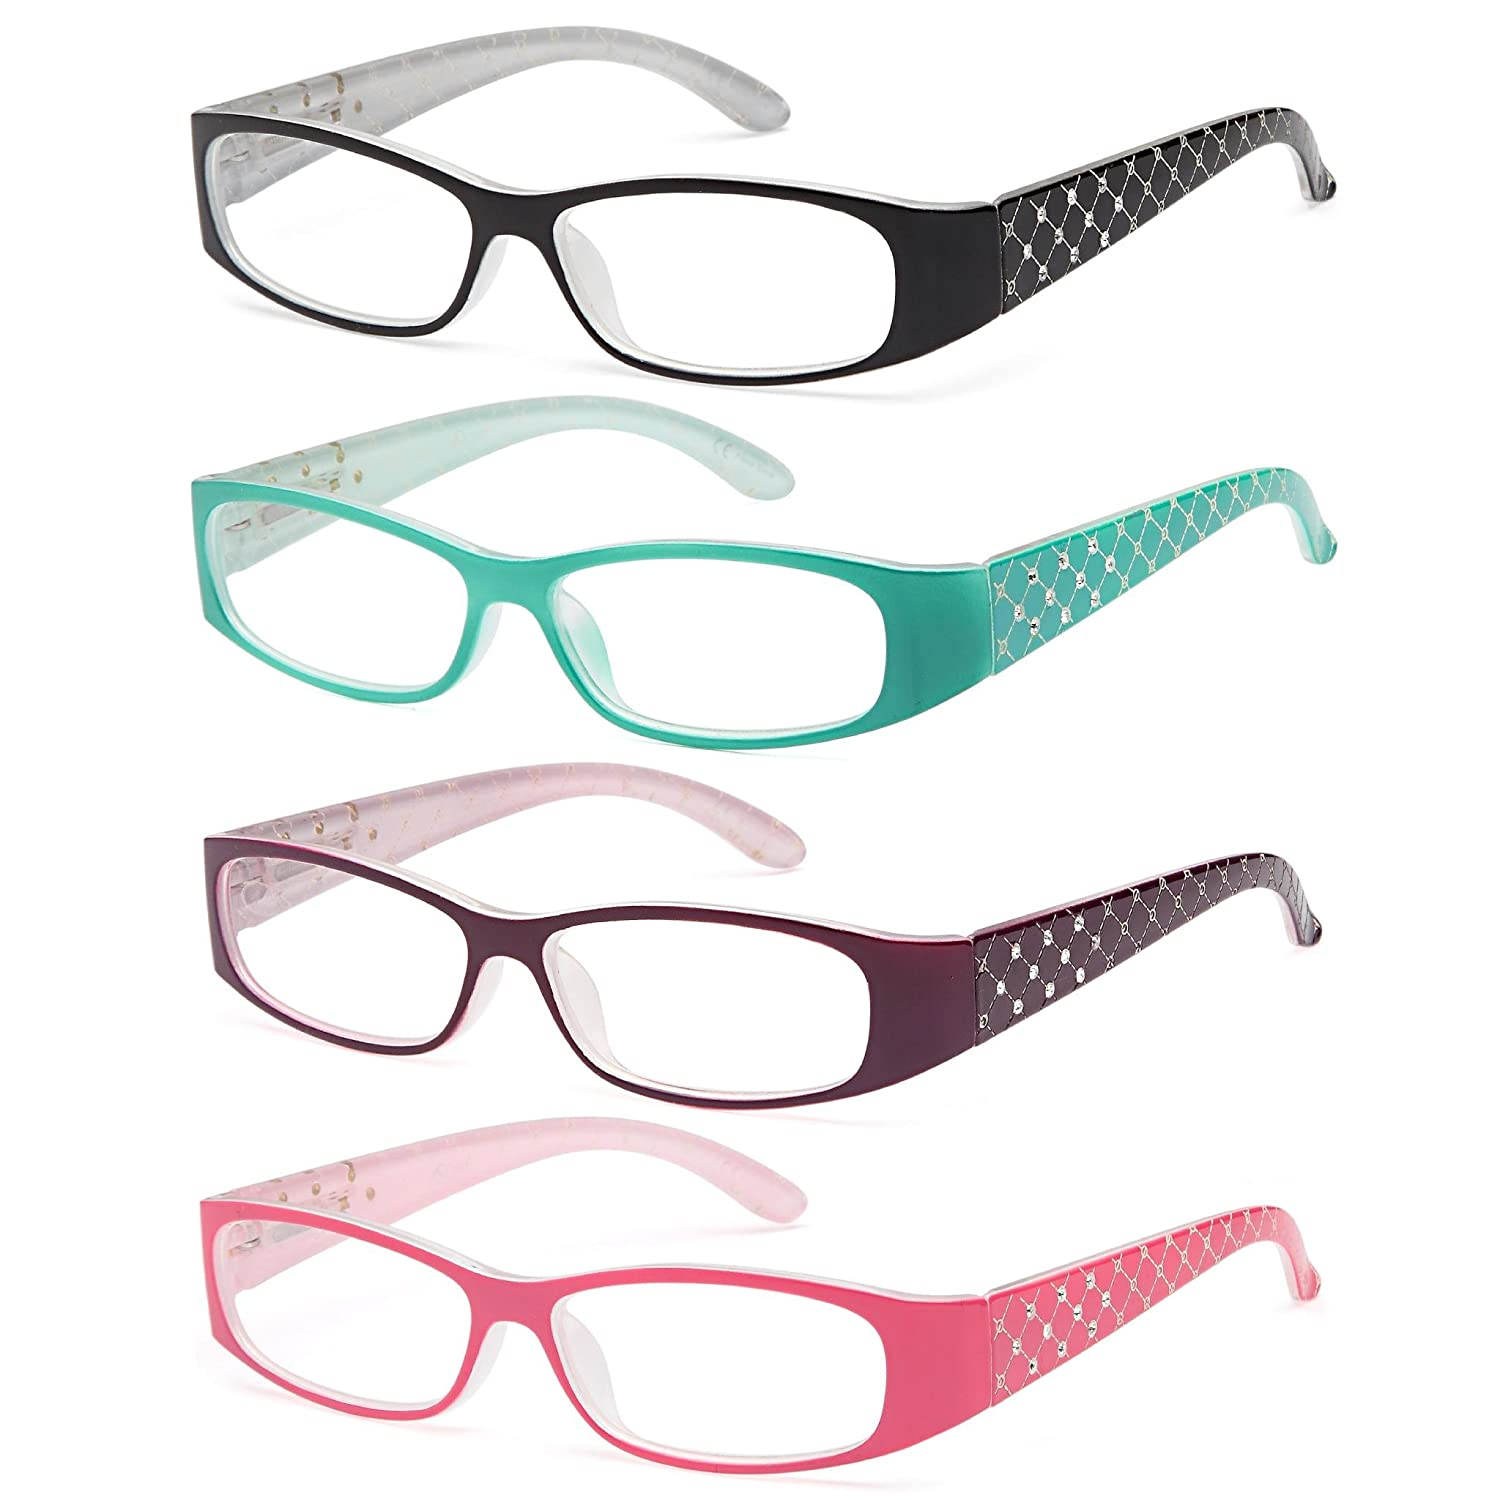 e68971b5ce8f Amazon.com: ALTEC VISION Women's Reading Glasses - 4 Pairs Shiny Ladies  Fashion Readers 1.25: Clothing